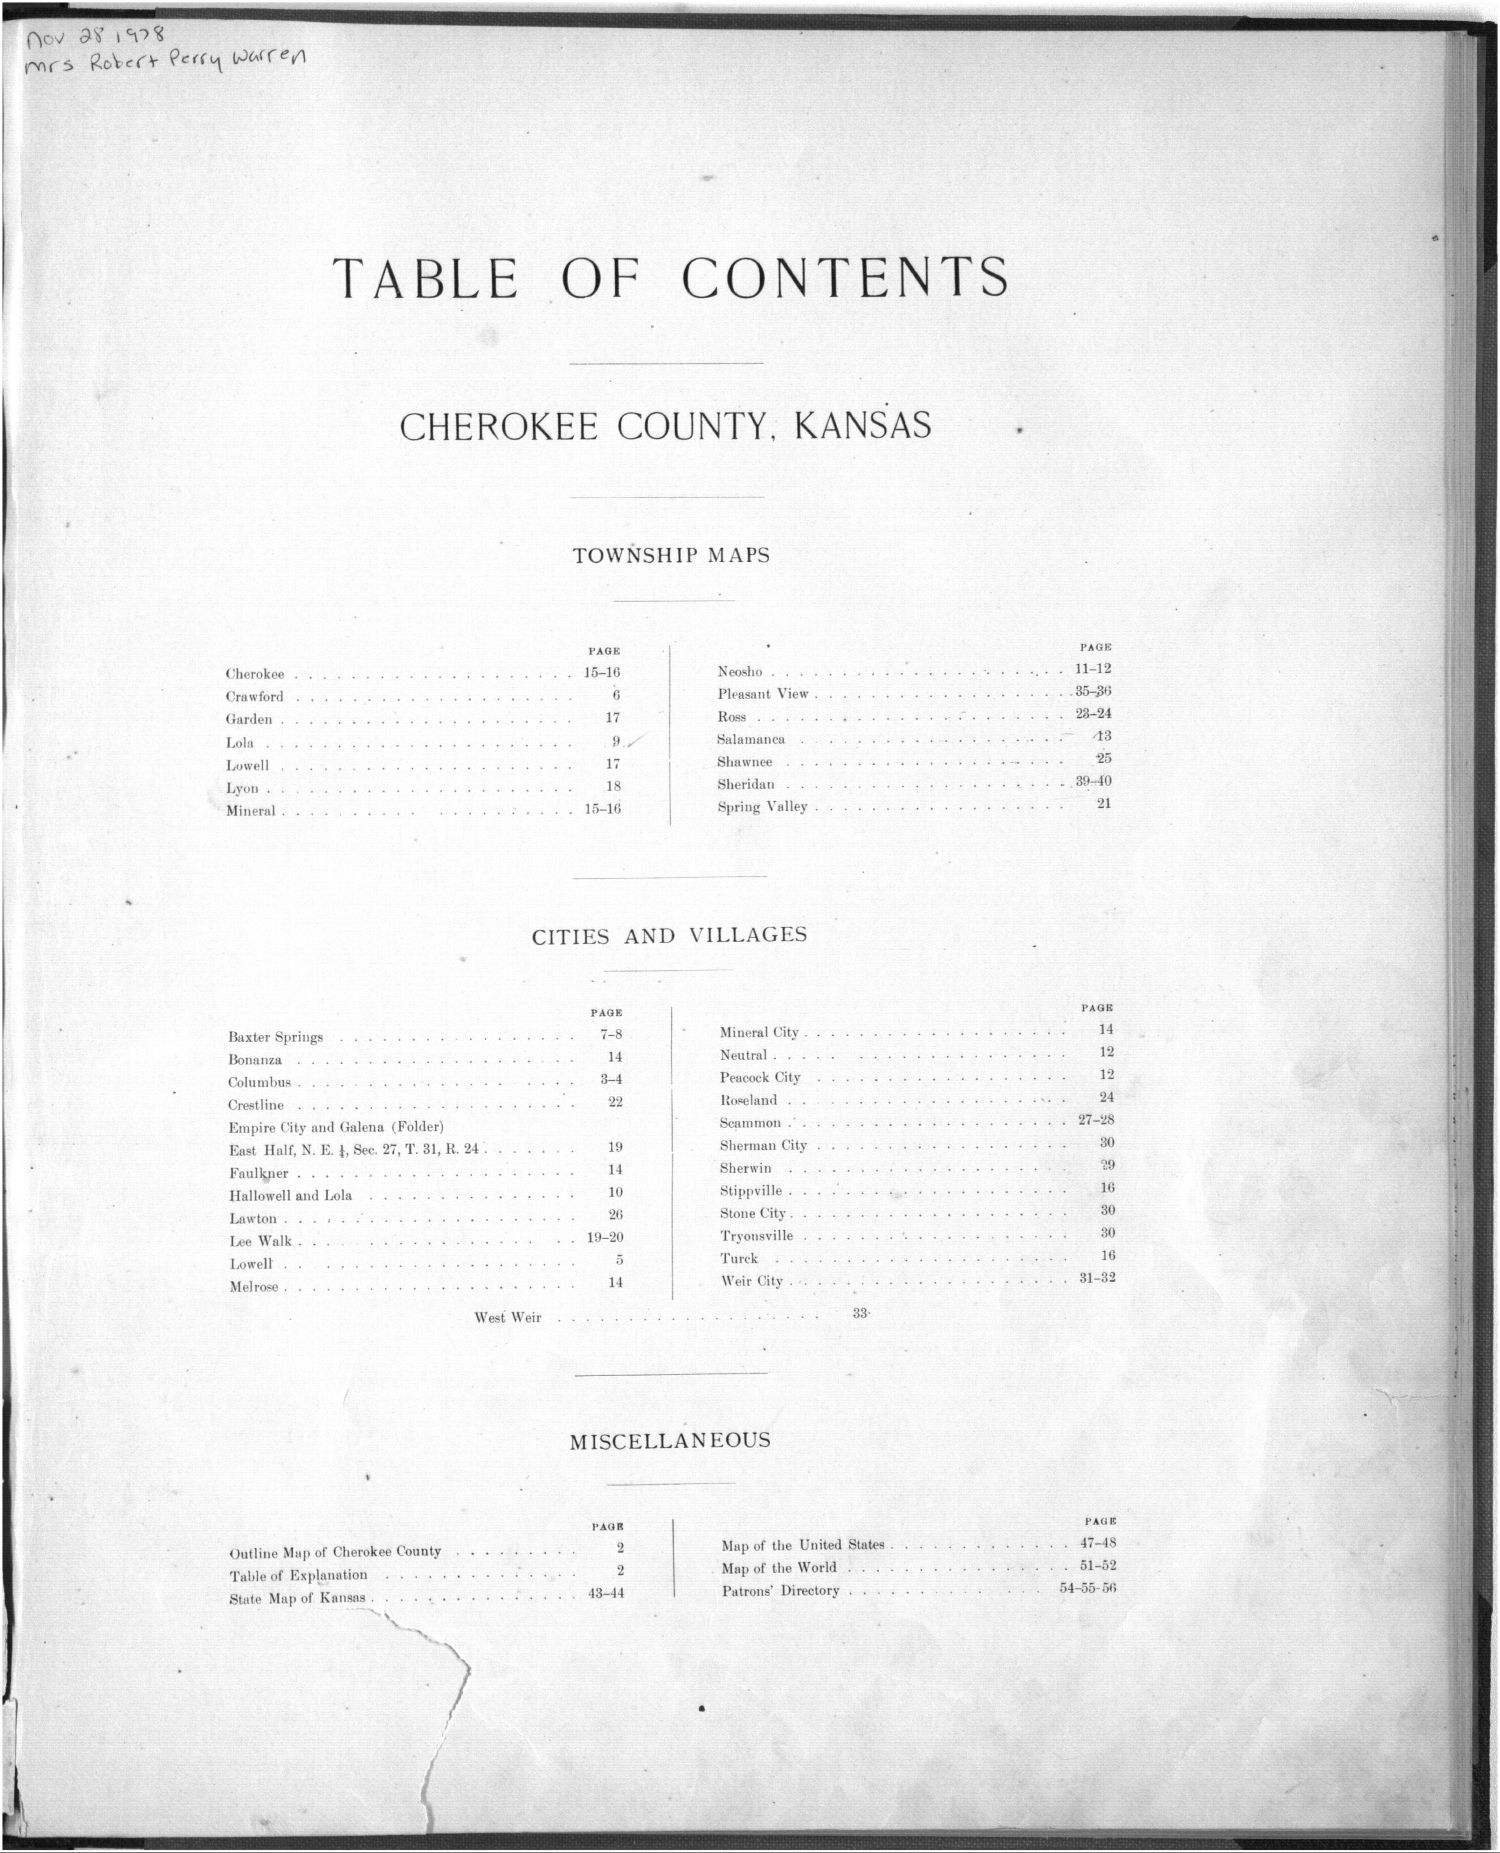 Plat book, Cherokee County, Kansas - Table of Contents